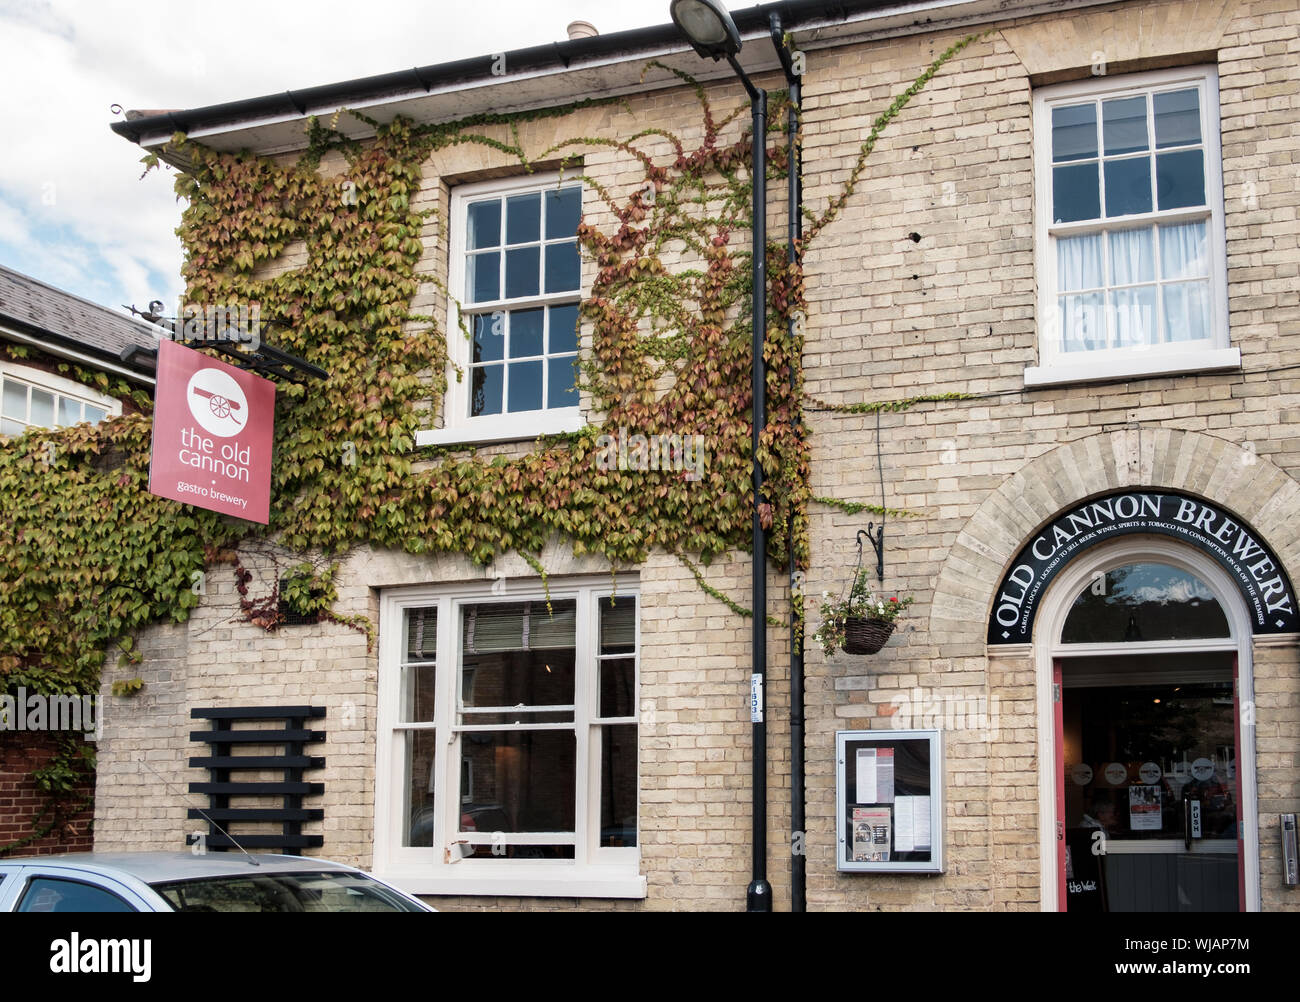 Gastro pub The Old Cannon Brewery in Bury St Edmunds, Suffolk, UK Stock Photo